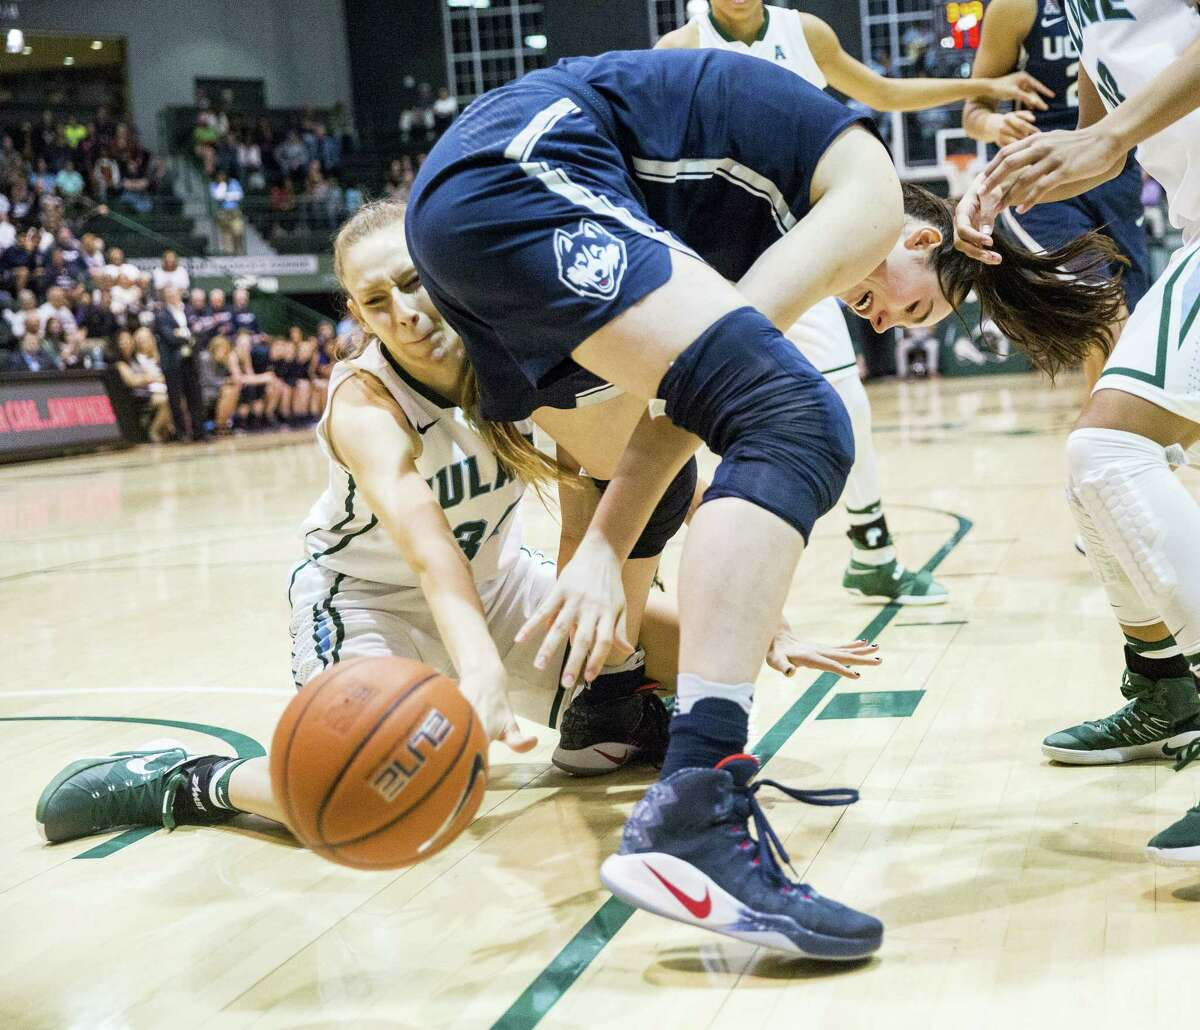 Tulane center Ksenija Madzarevic, left, tries to get the ball from UConn's Natalie Butler.